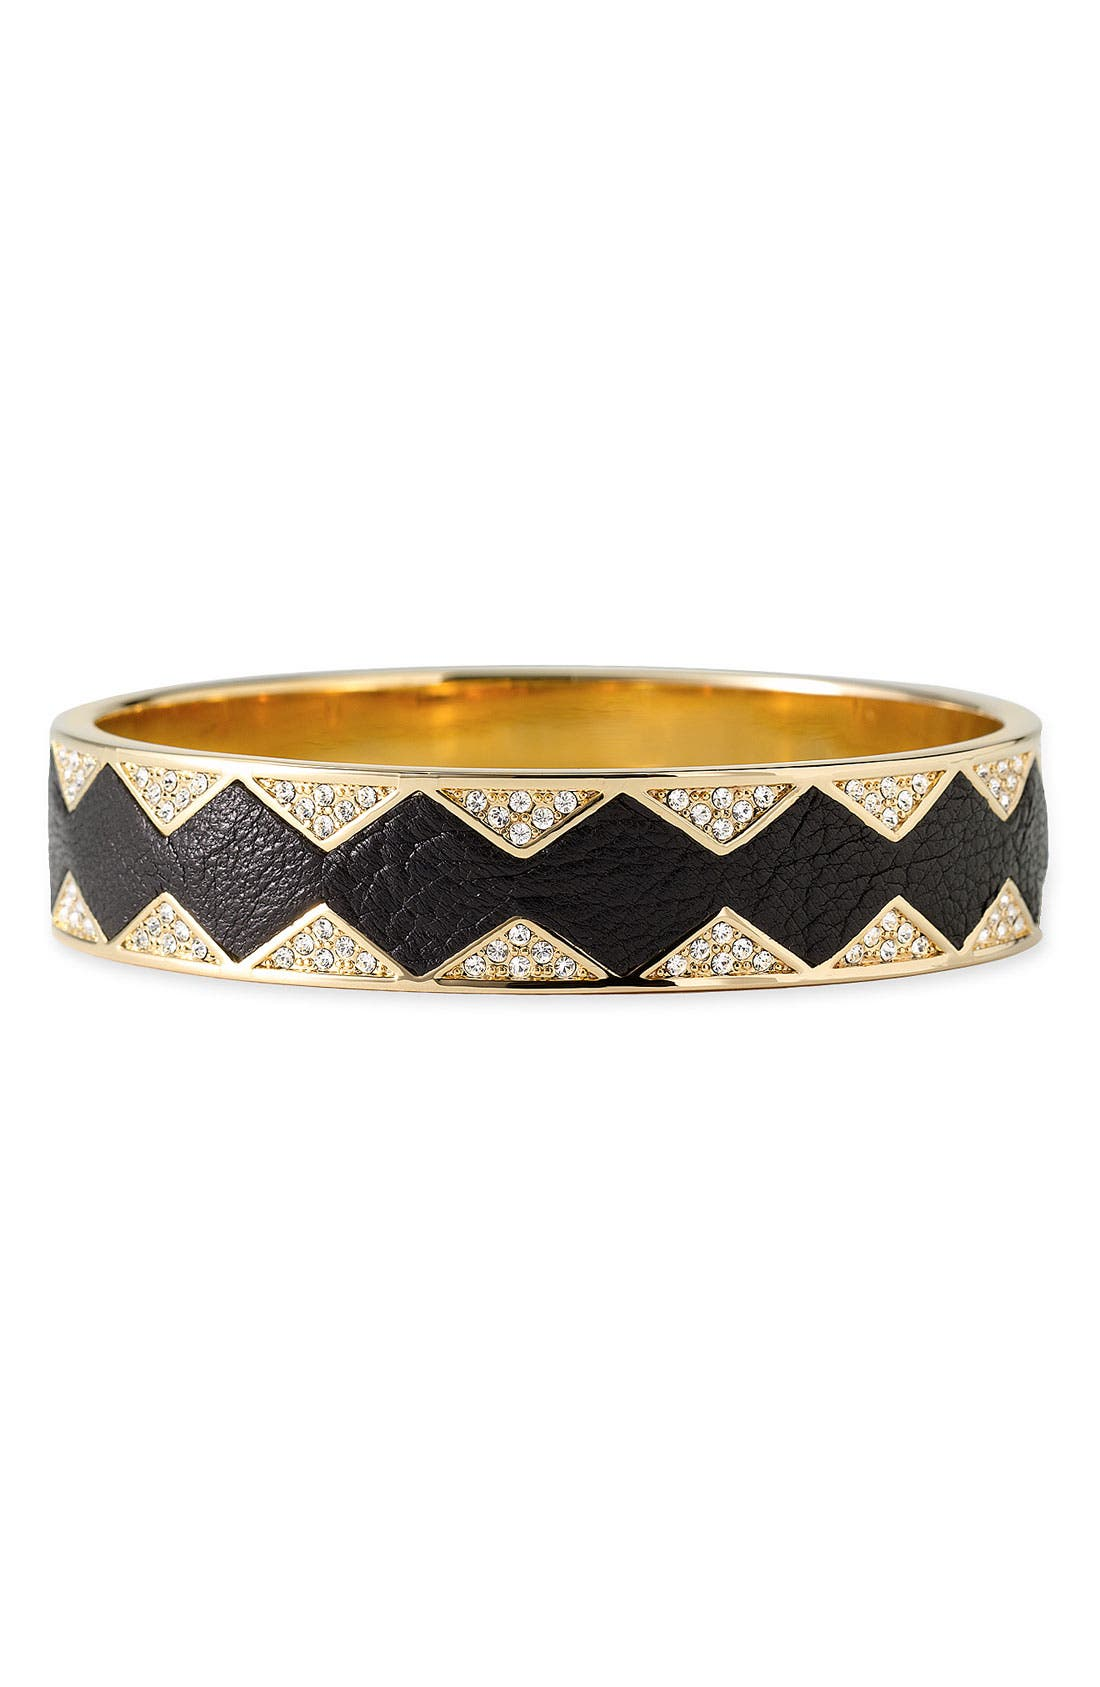 Alternate Image 1 Selected - House of Harlow 1960 Leather Bangle